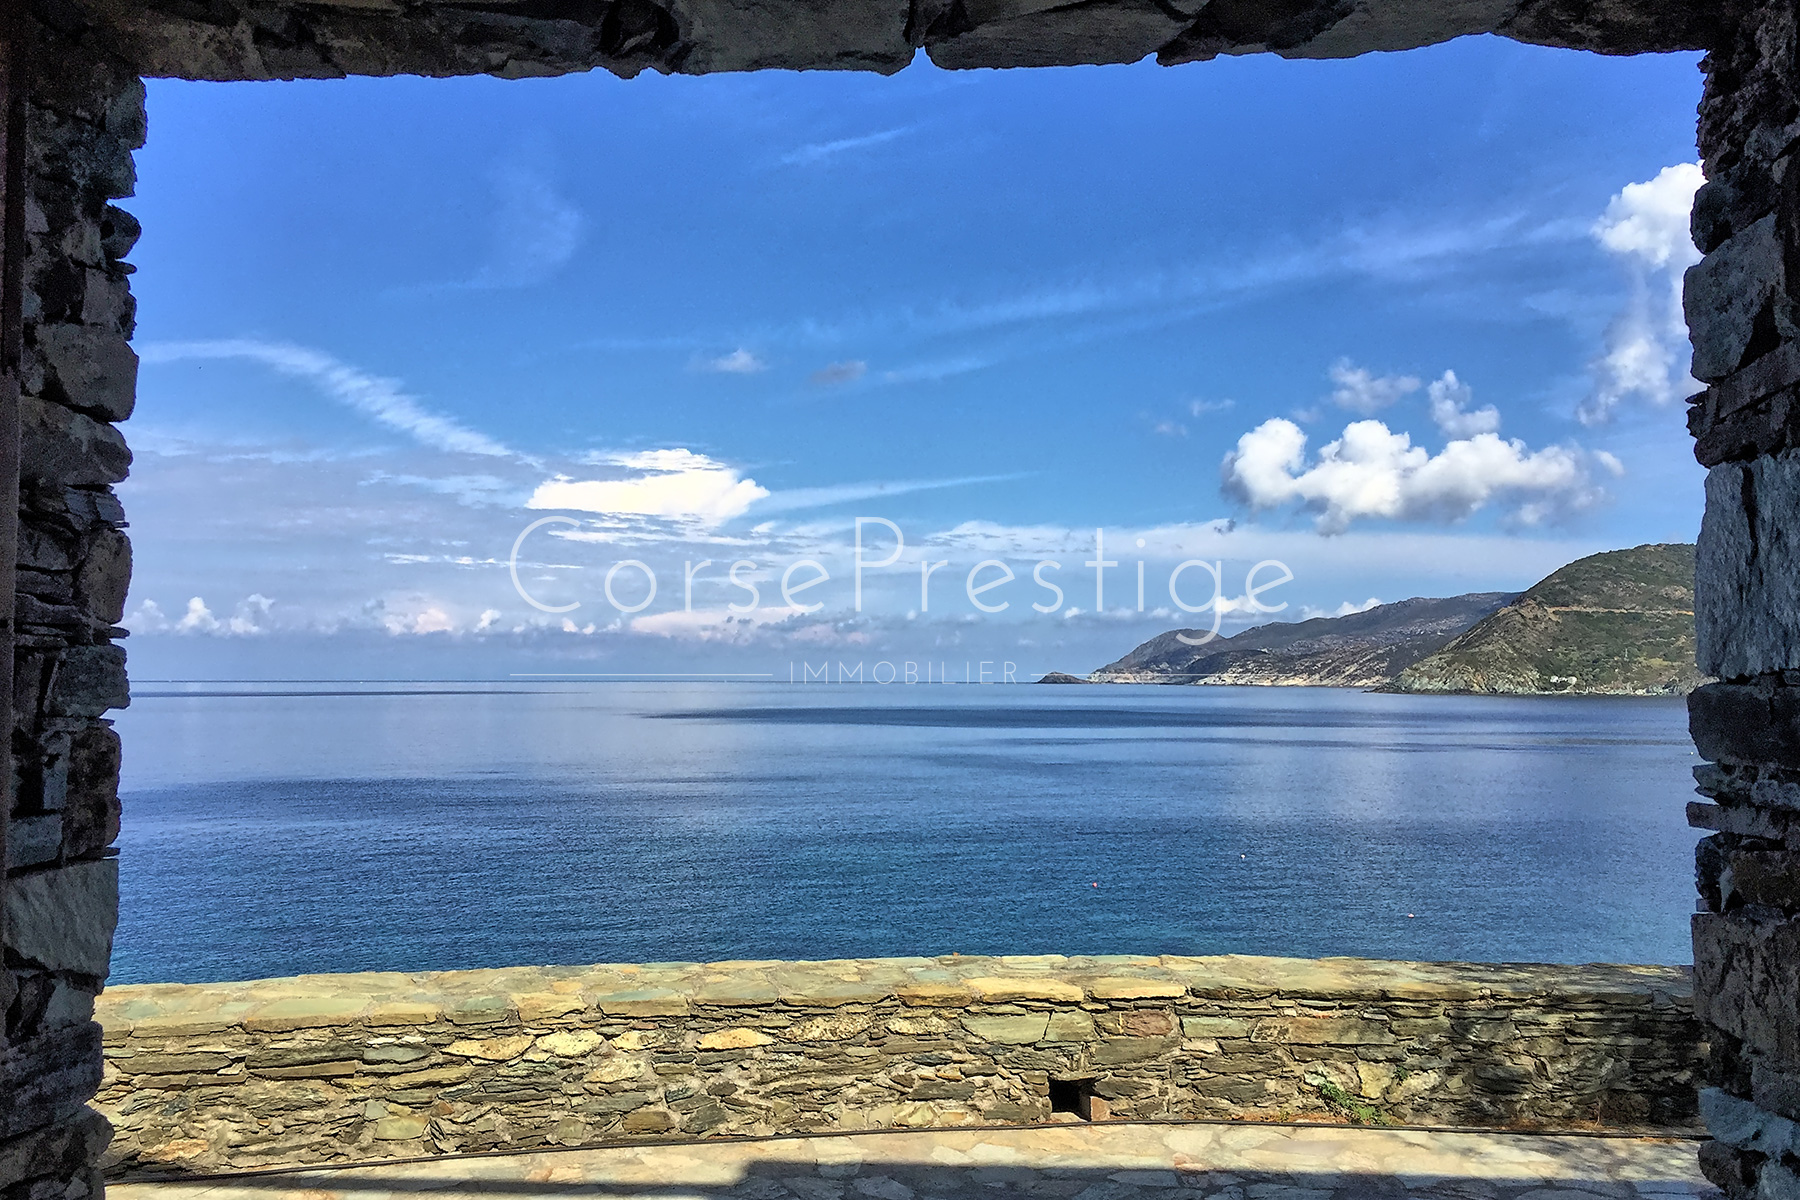 WATERFRONT HOUSE IN CORSICA - Ref N55